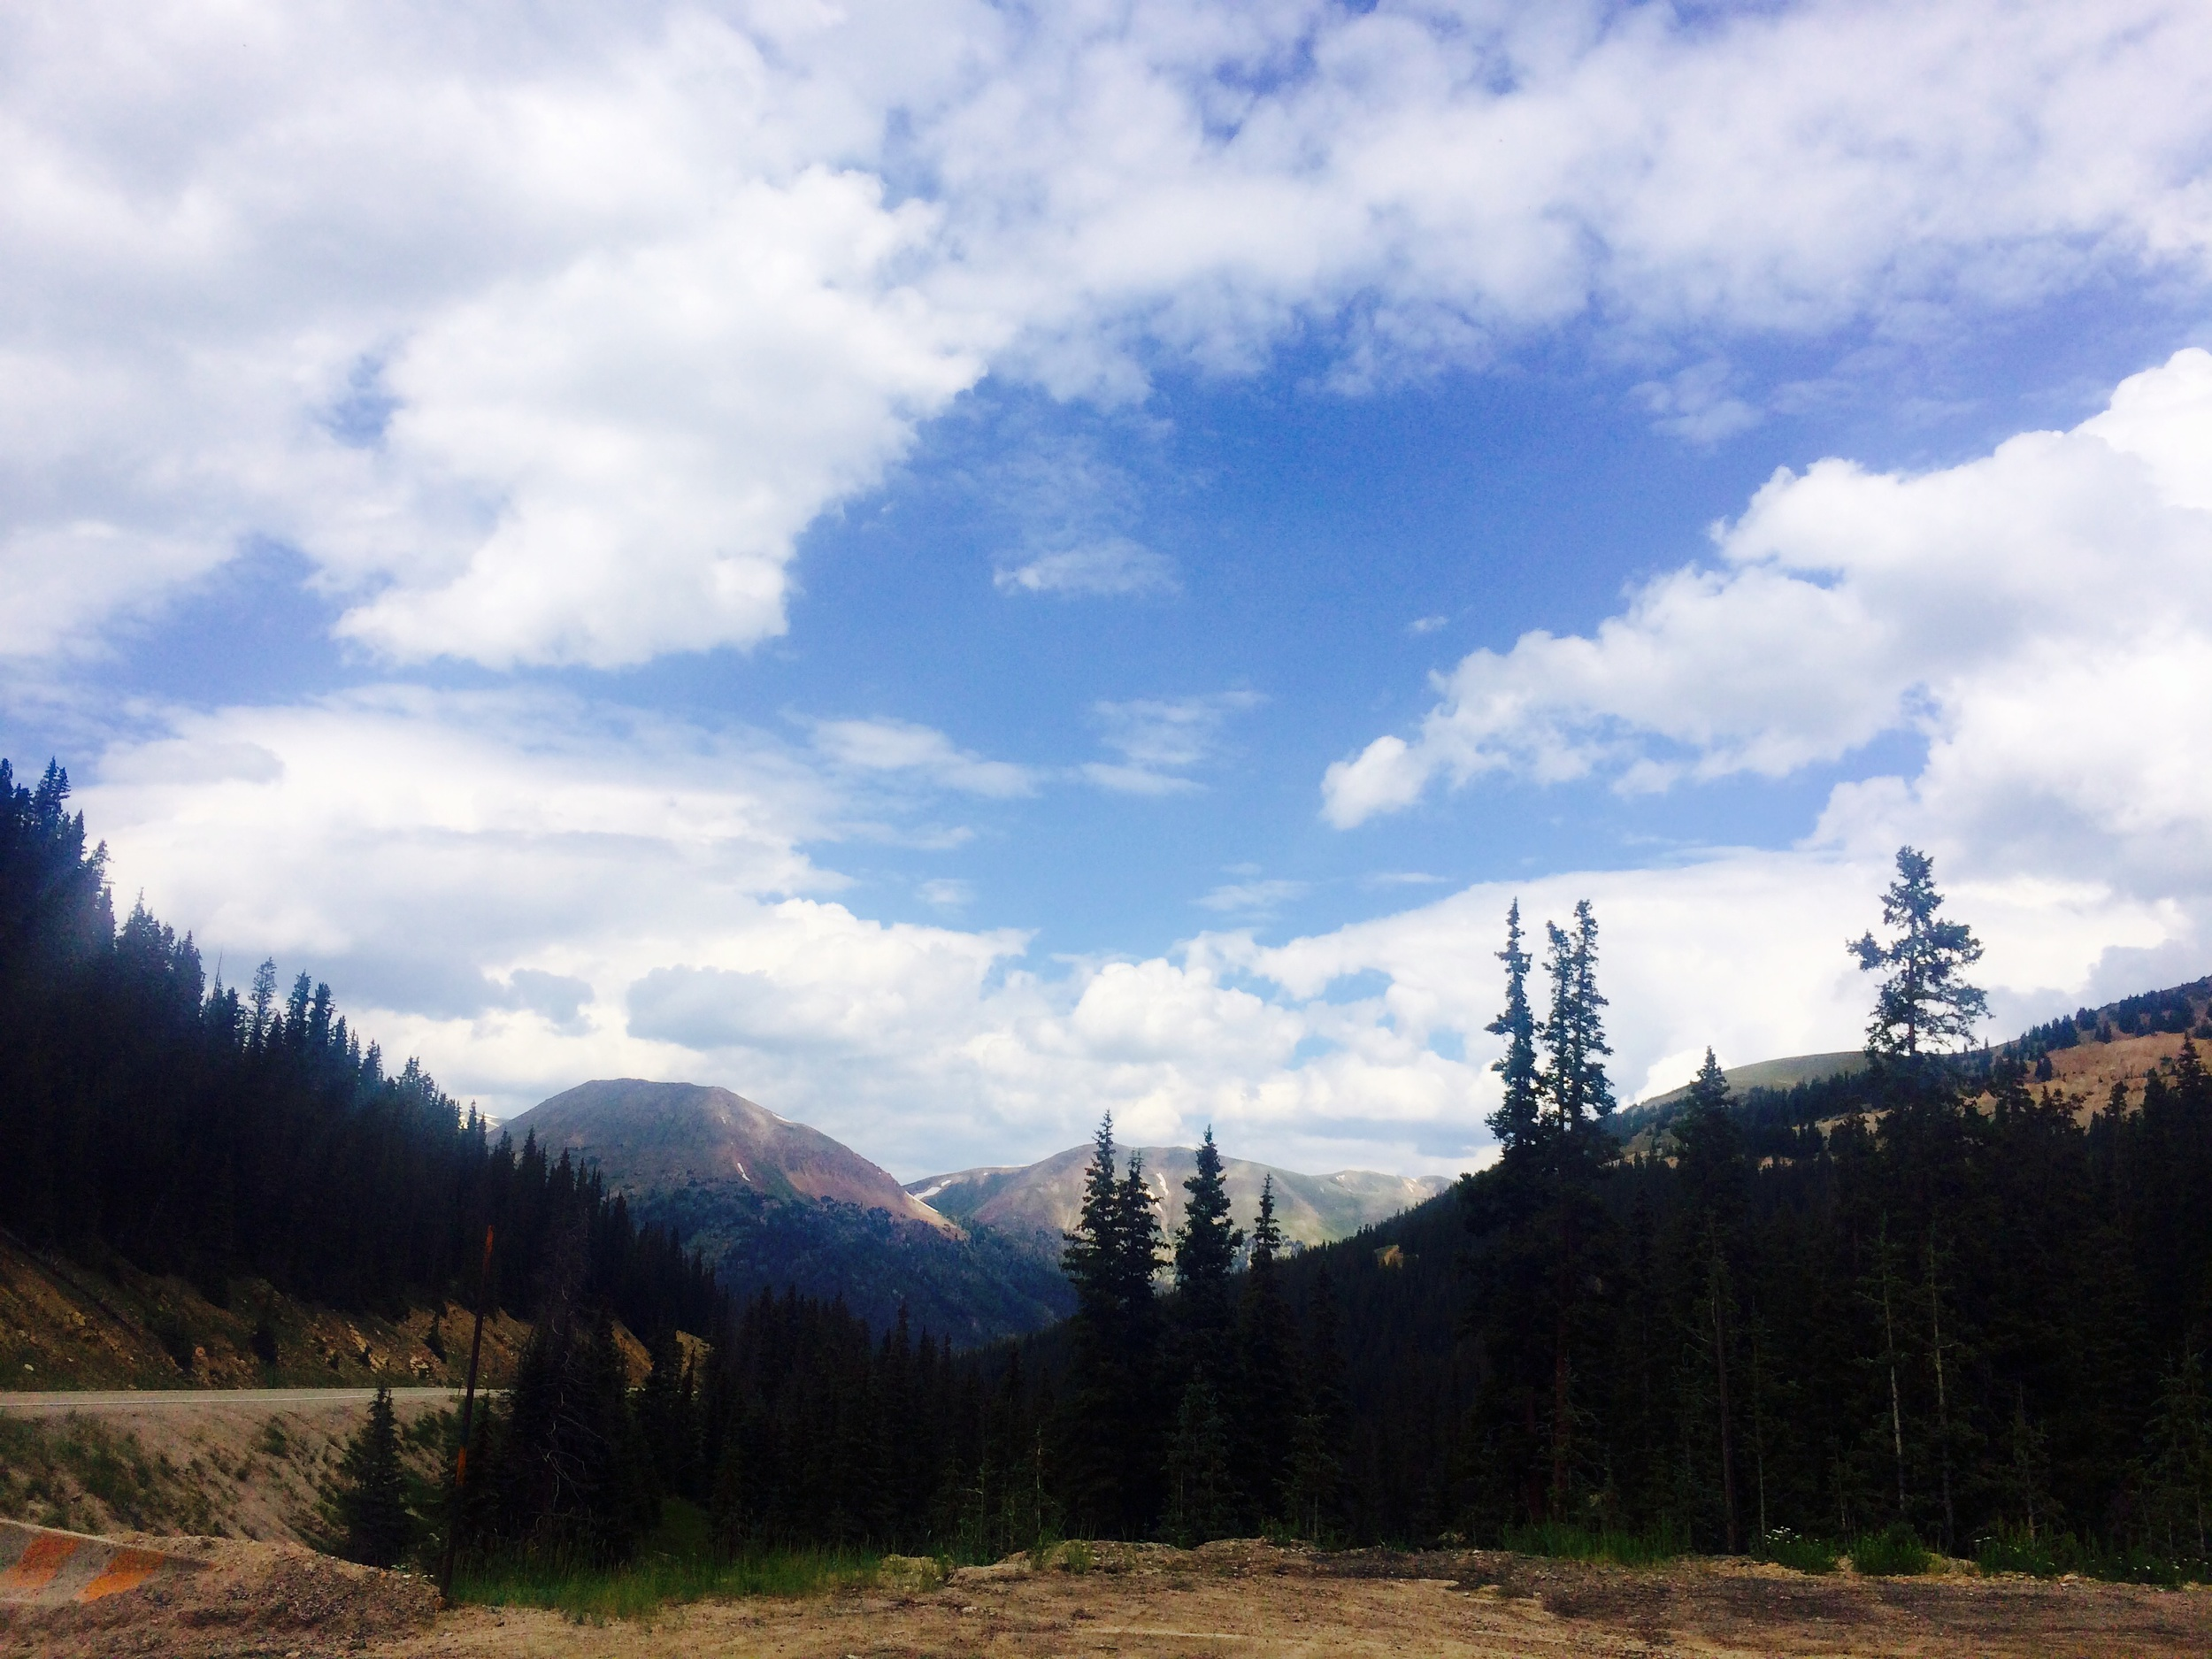 One of our quick breaks on the way up Loveland Pass